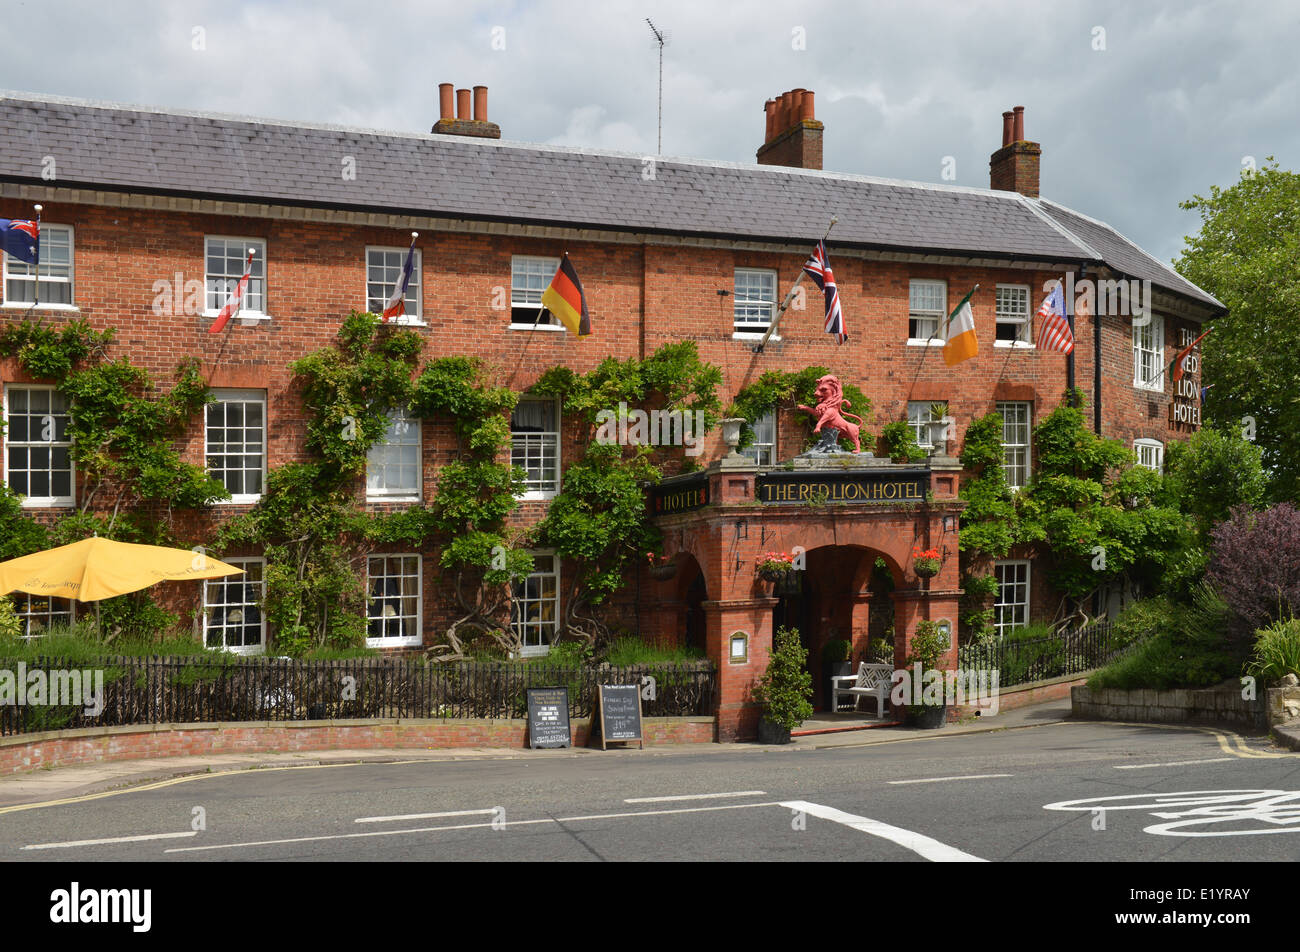 The Red Lion Hotel, Henley, Berkshire, UK -1 - Stock Image